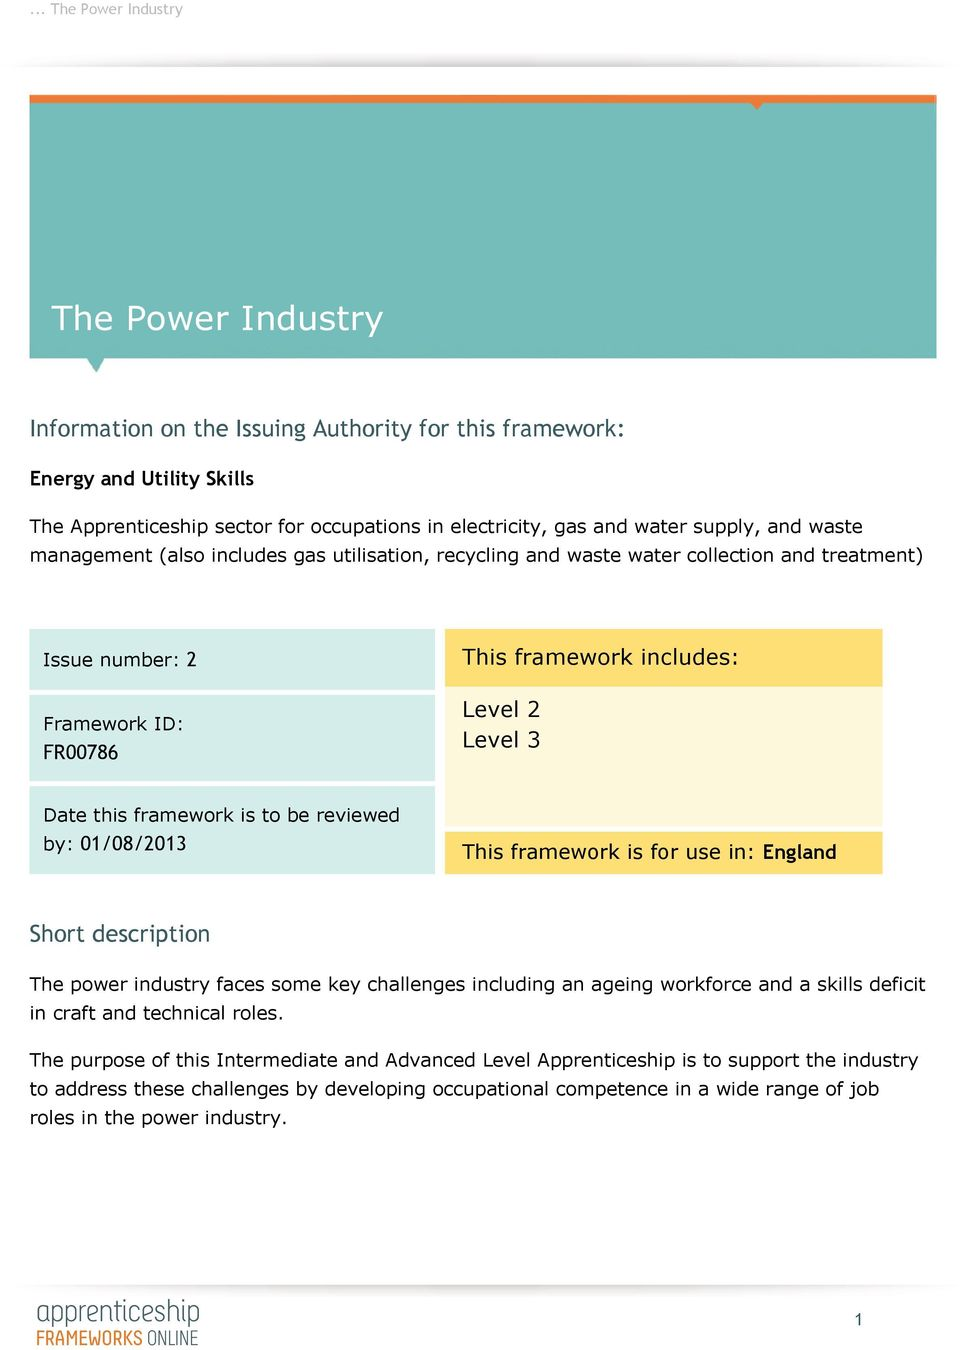 be reviewed by: 01/08/2013 This framework is for use in: England Short description The power industry faces some key challenges including an ageing workforce and a skills deficit in craft and